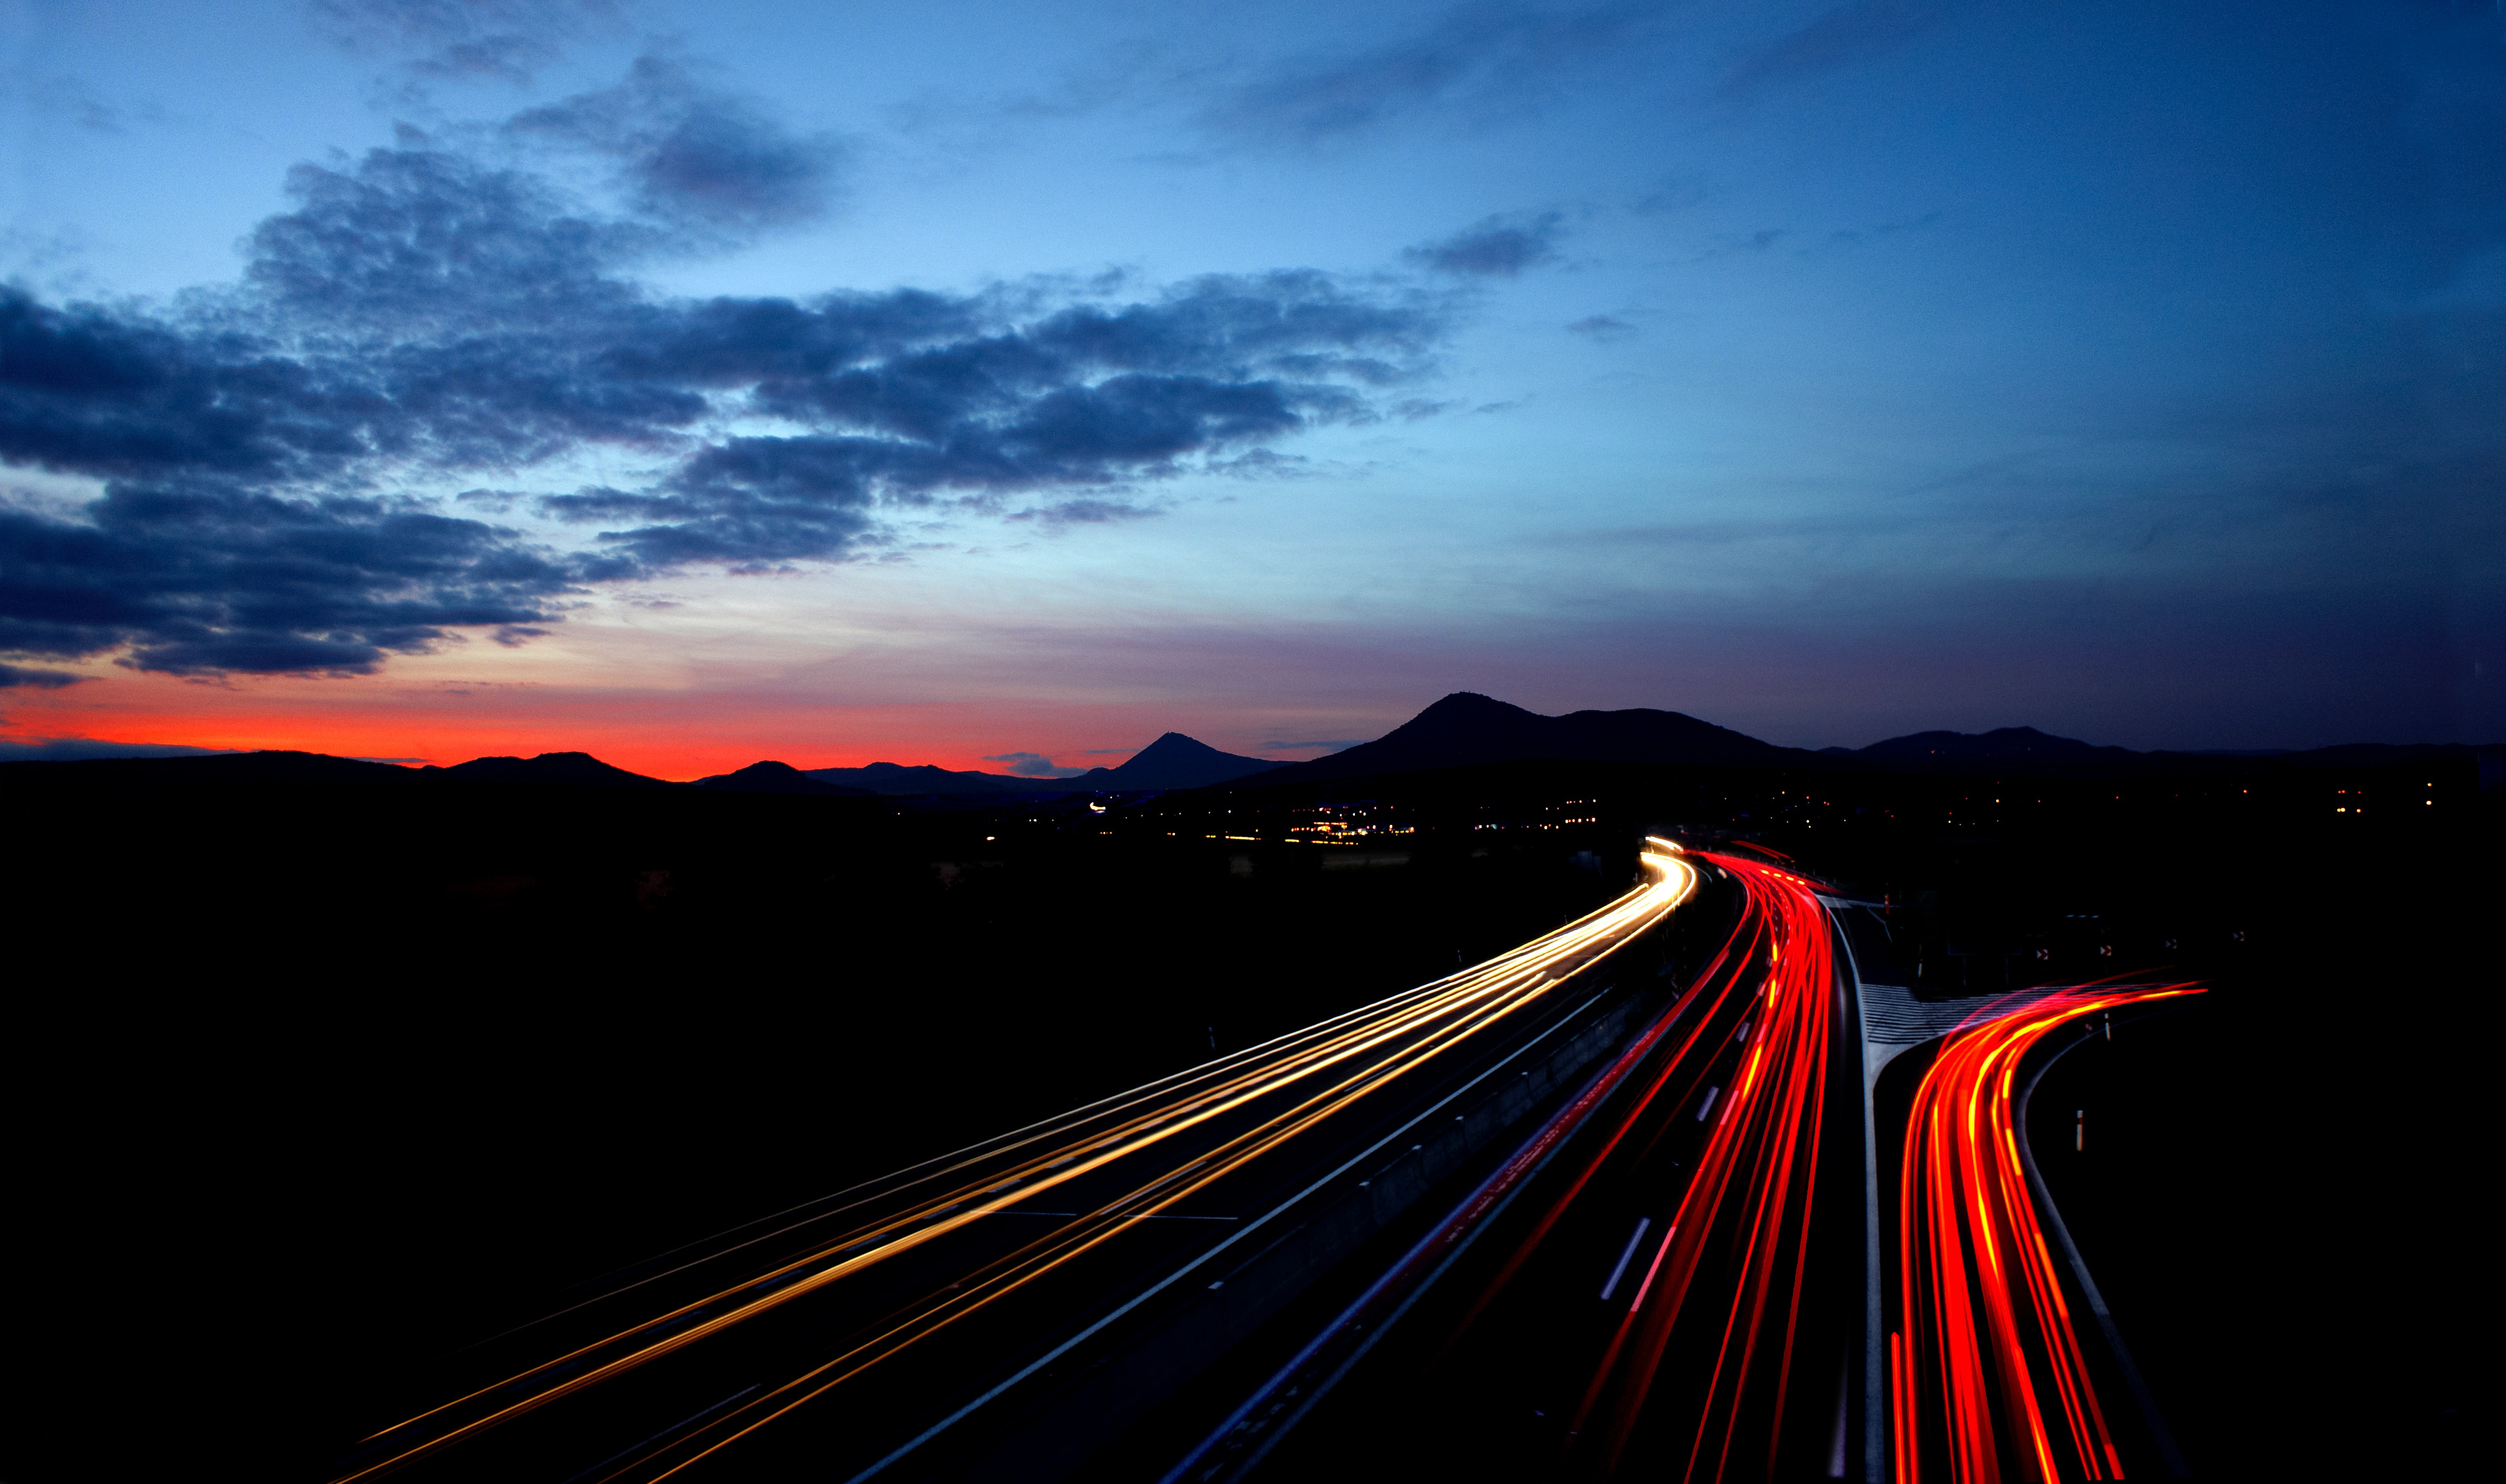 Construction of 6 major highways in Greece will be completed in 5 years